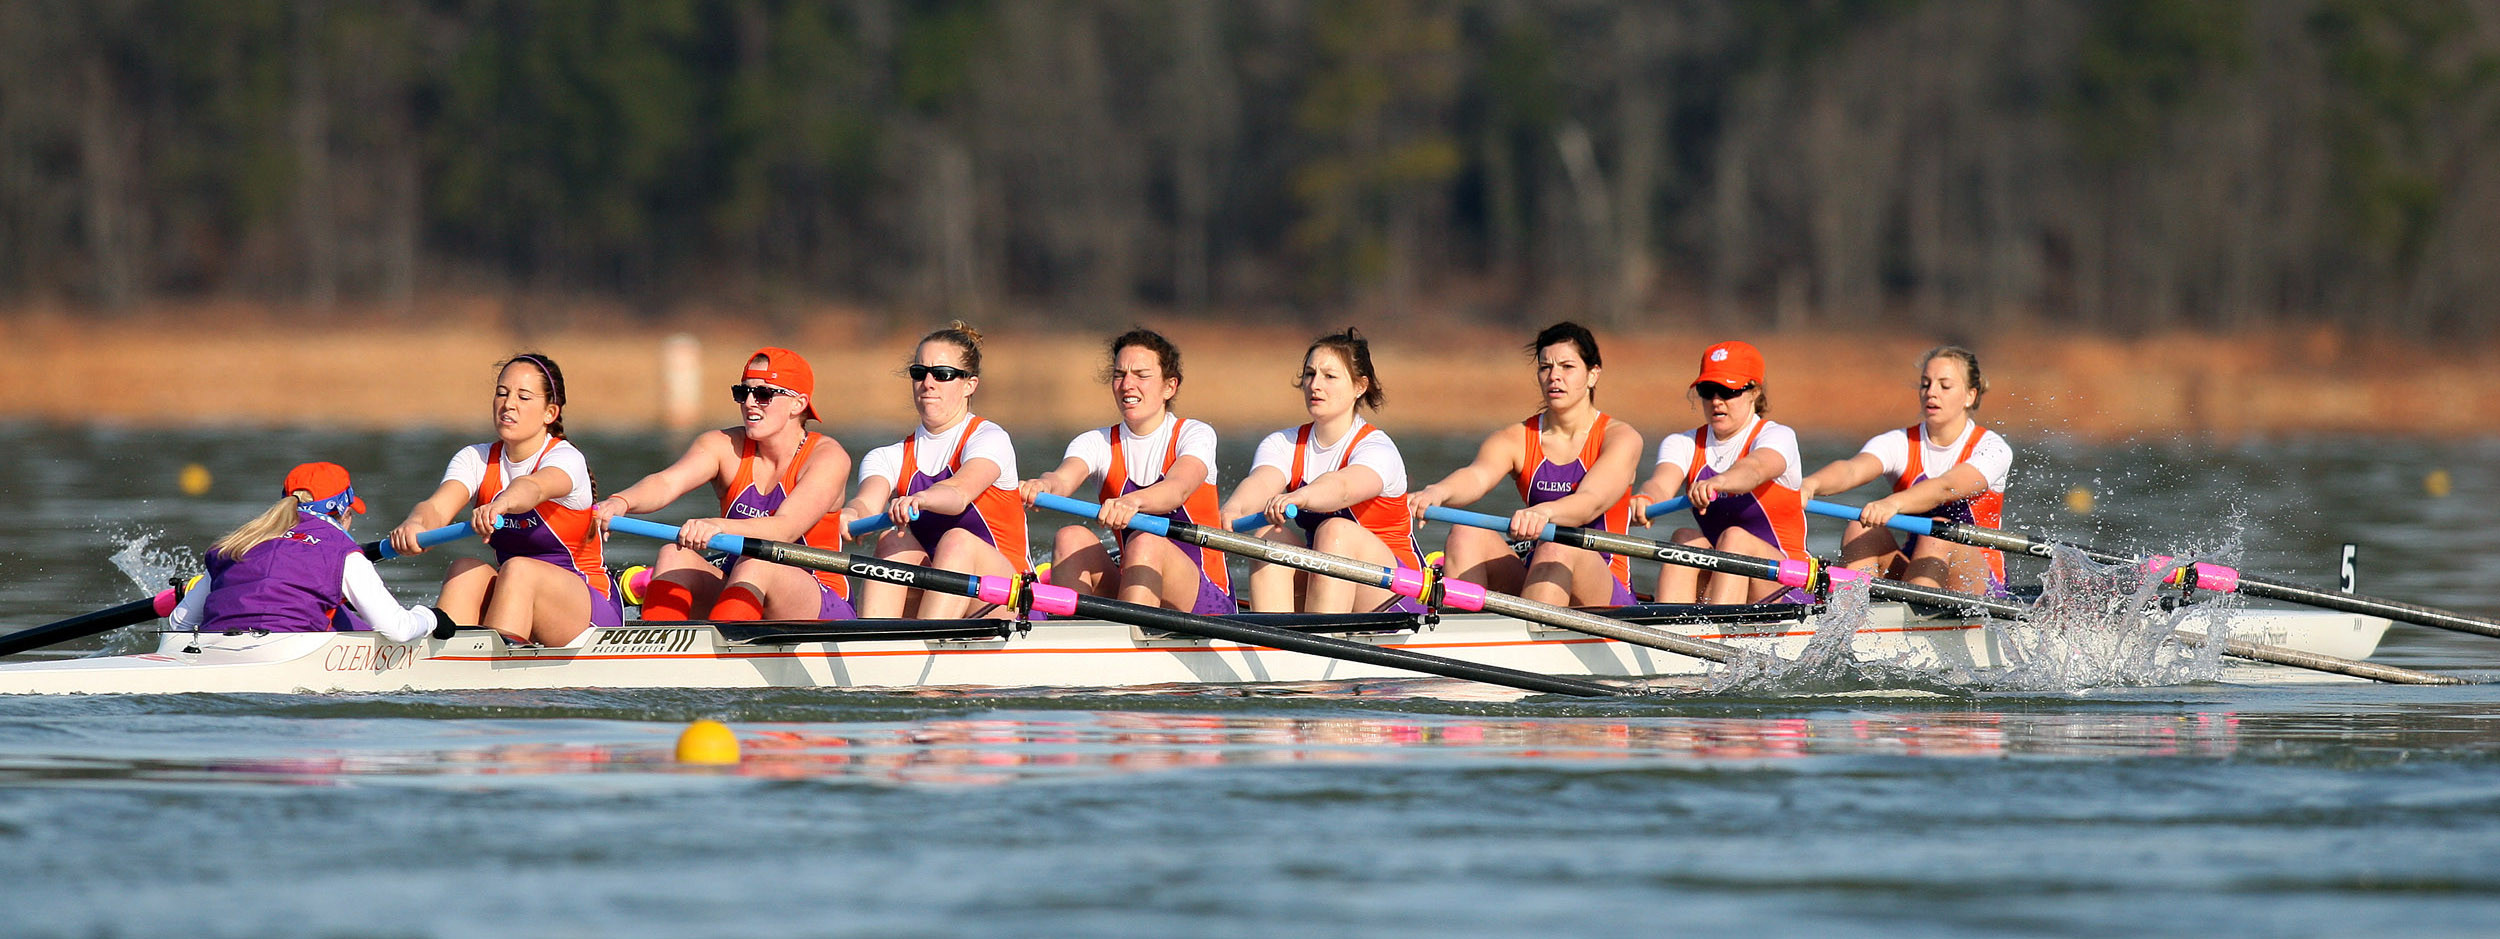 No. 14 Rowing Successful on the Charles River on Saturday